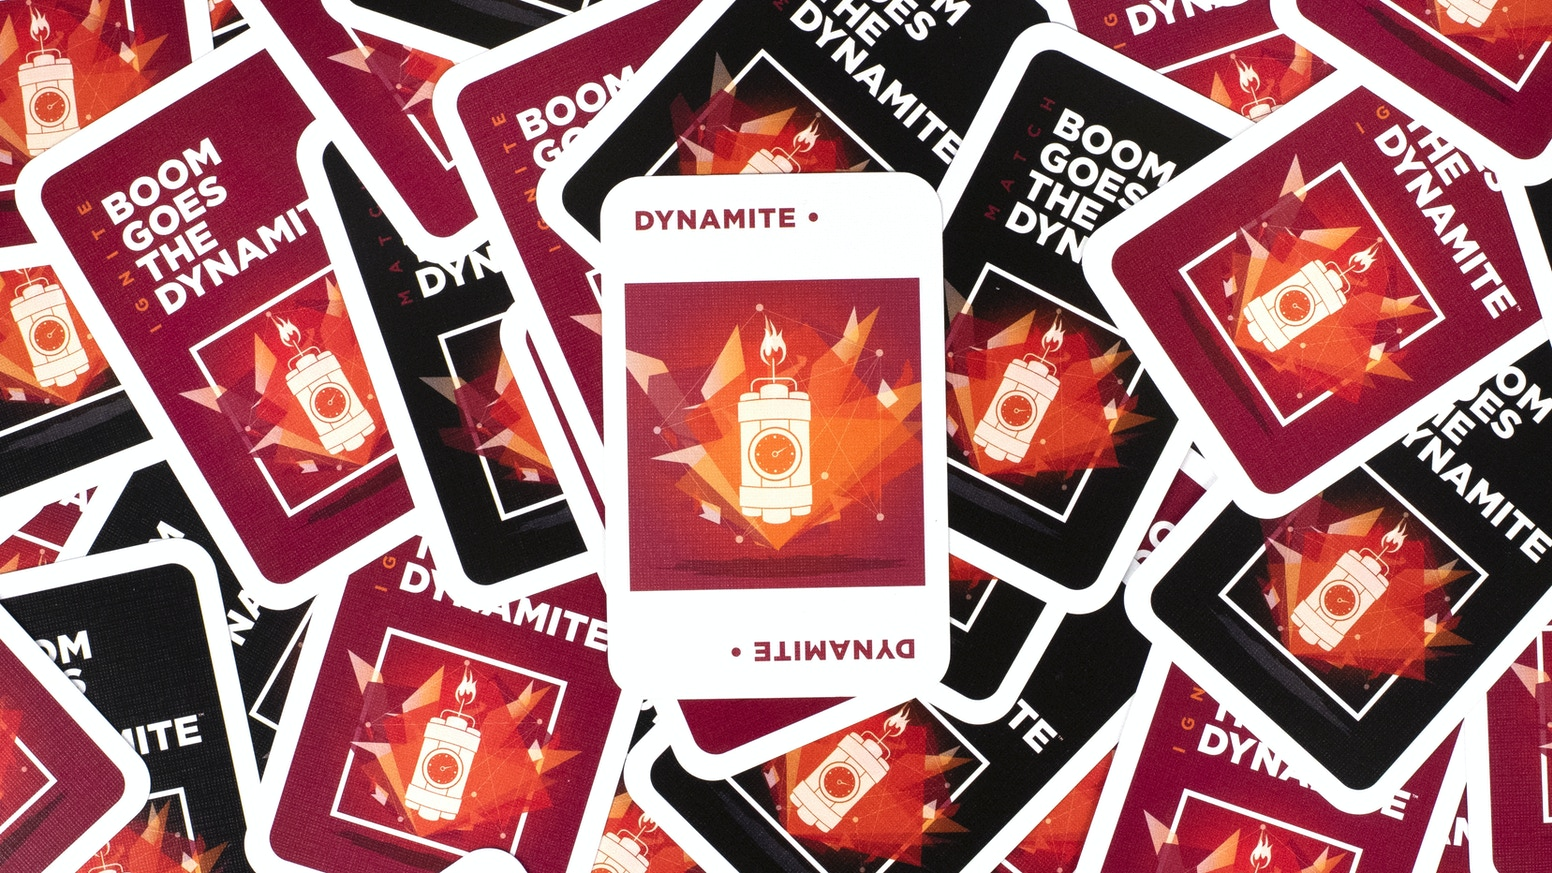 A dynamic, family-friendly matching game with an explosive twist!